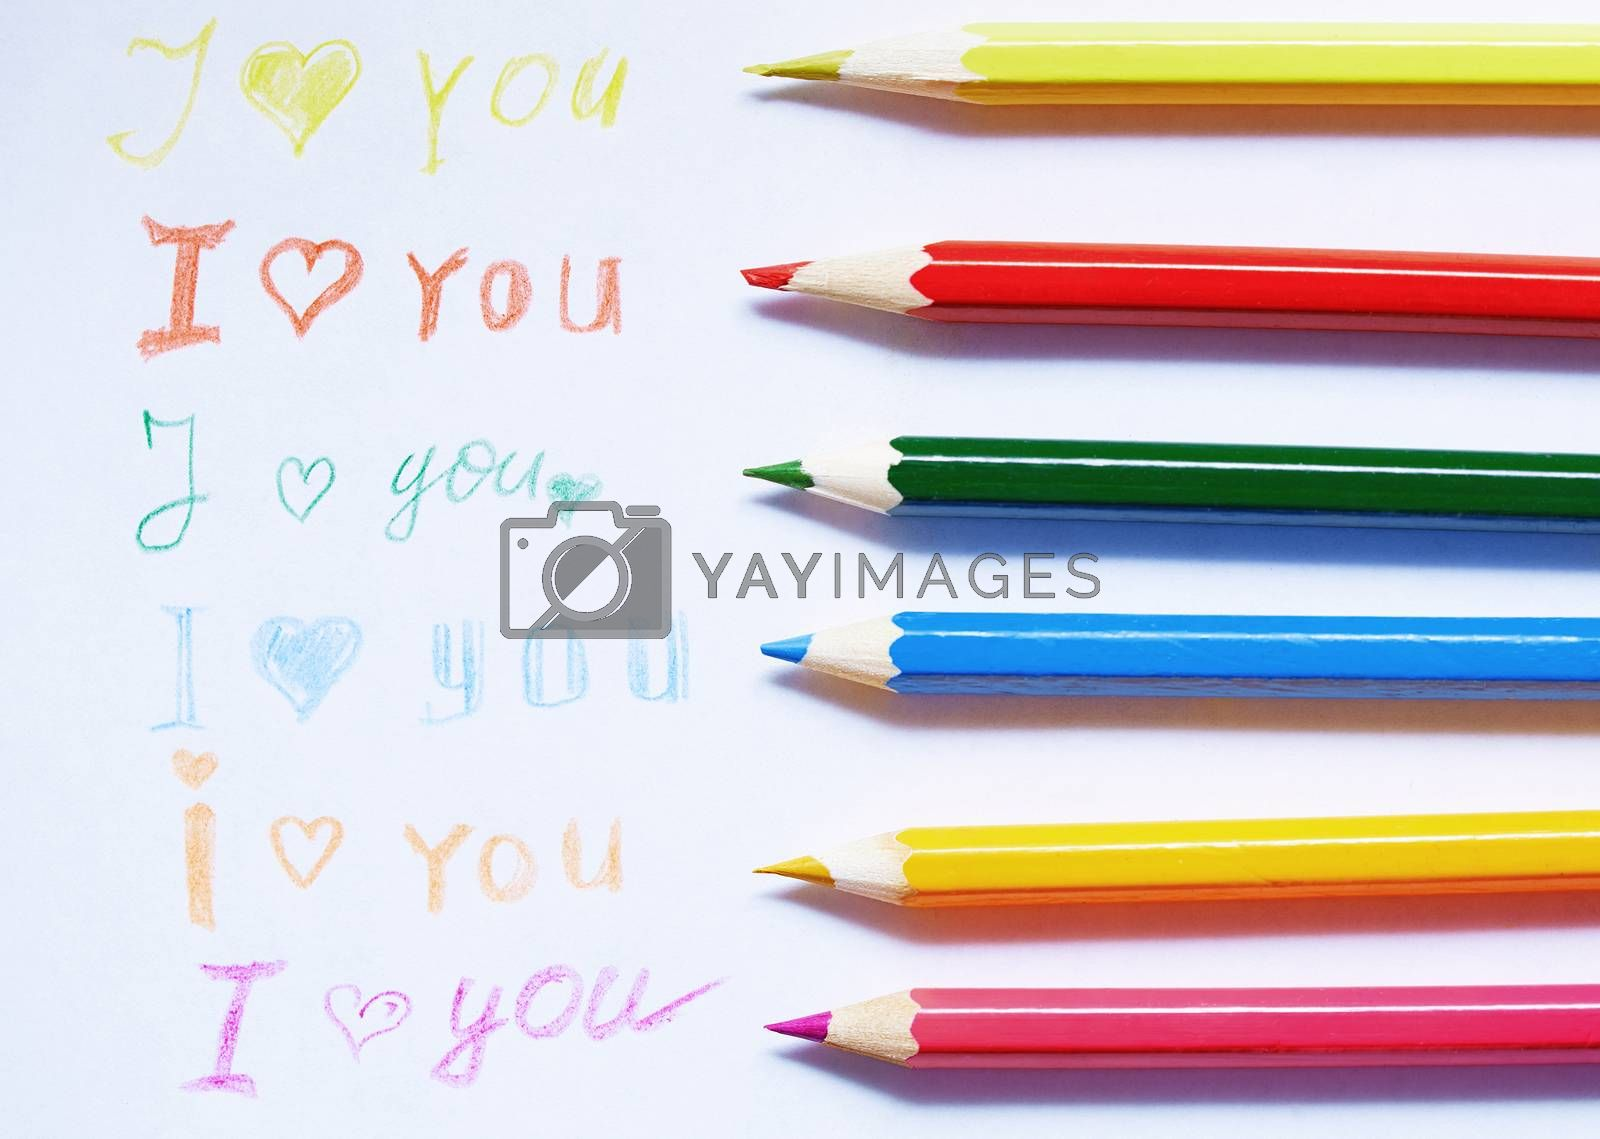 Paper with love you message and colored pencils